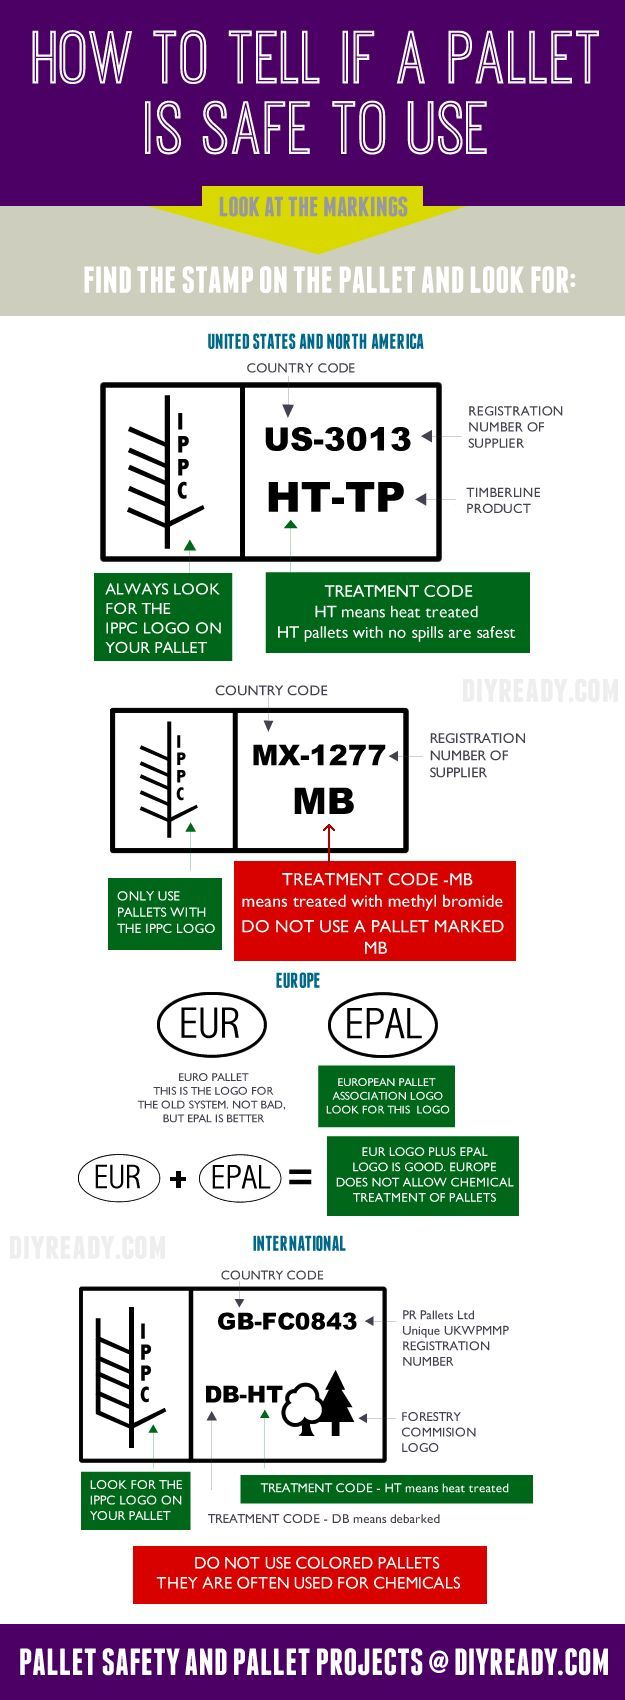 READ THIS BEFORE you make DIY Pallet Furniture and Crafts!  How To Know If A Wood Pallet Is Safe To Use: Stamps and Markings Safety Guide  >> http://diyready.com/how-to-know-if-a-pallet-is-safe/